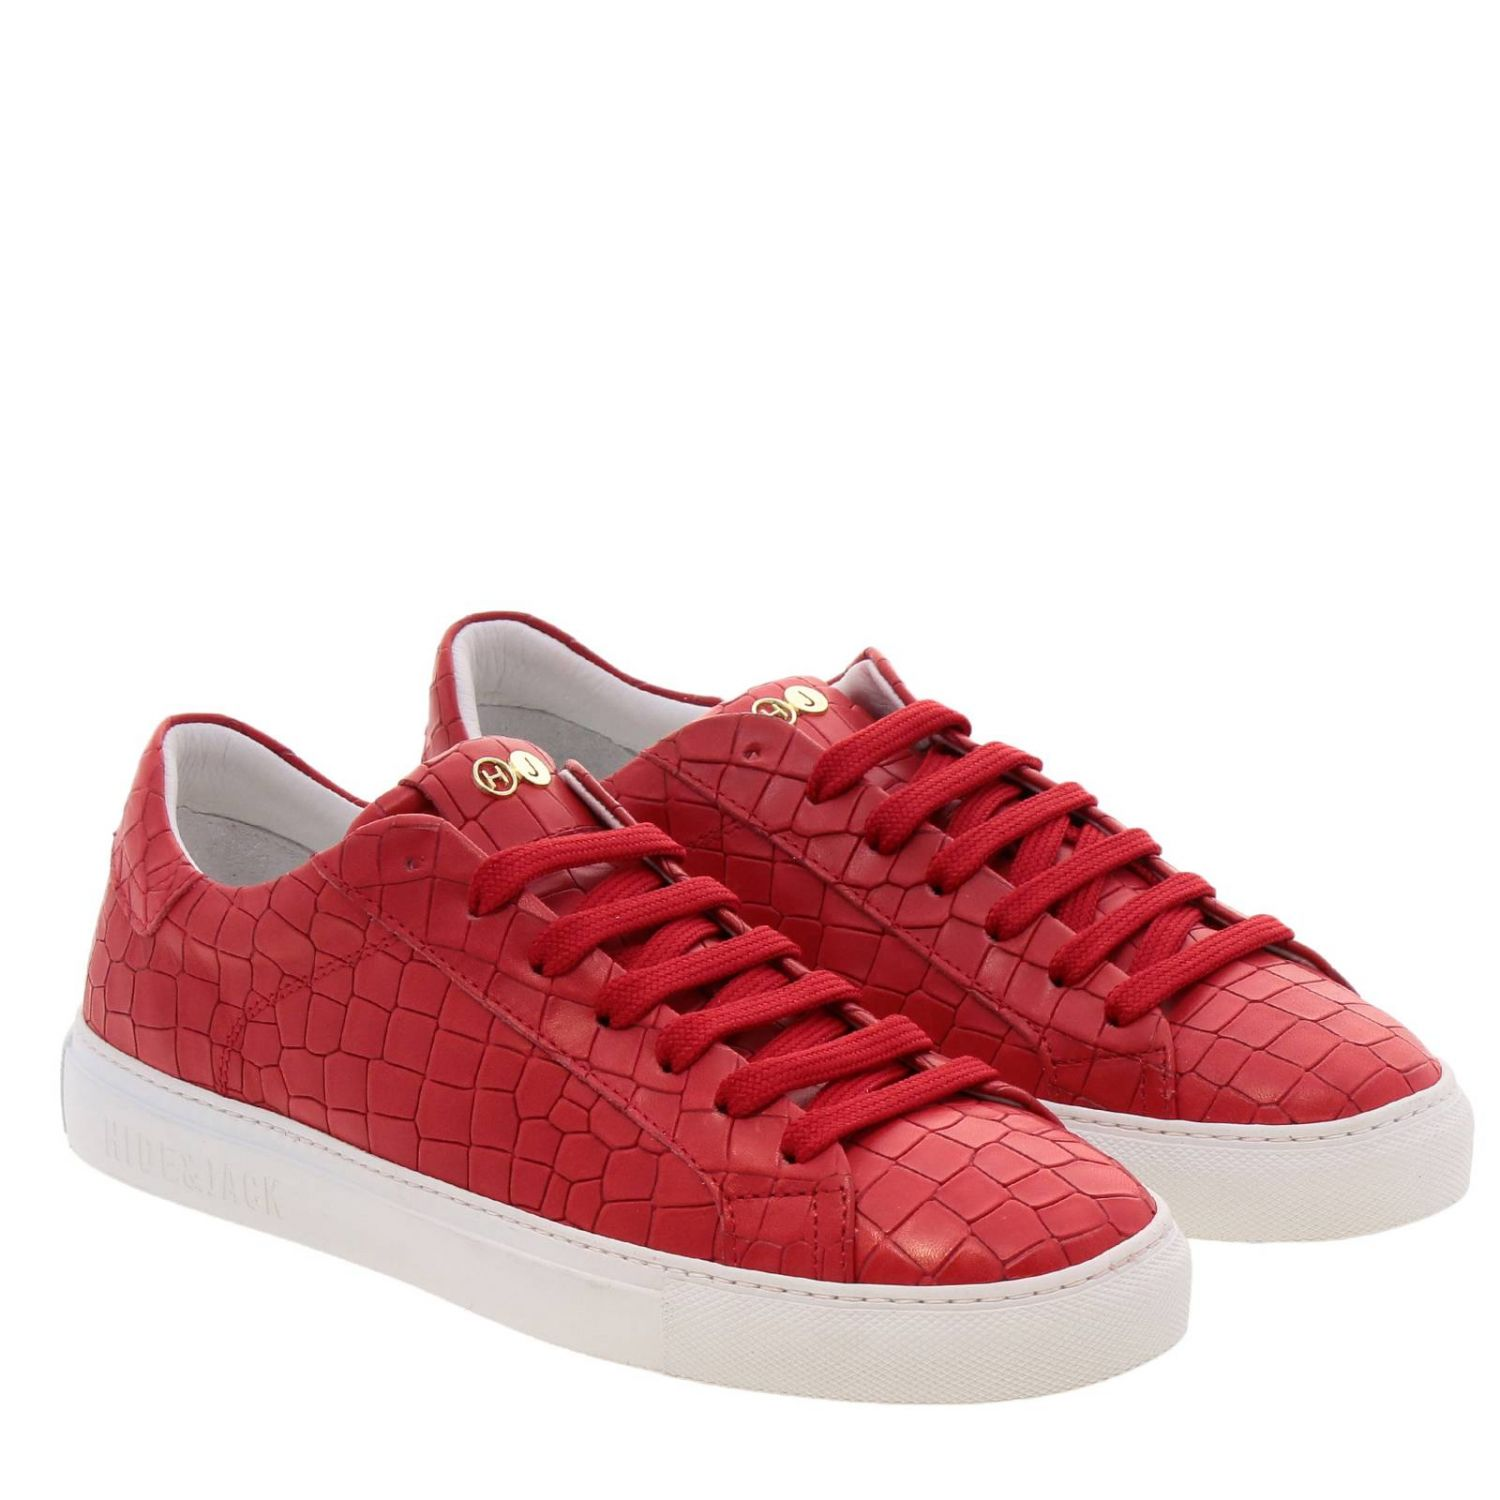 Chaussures homme Hide & Jack rouge 2